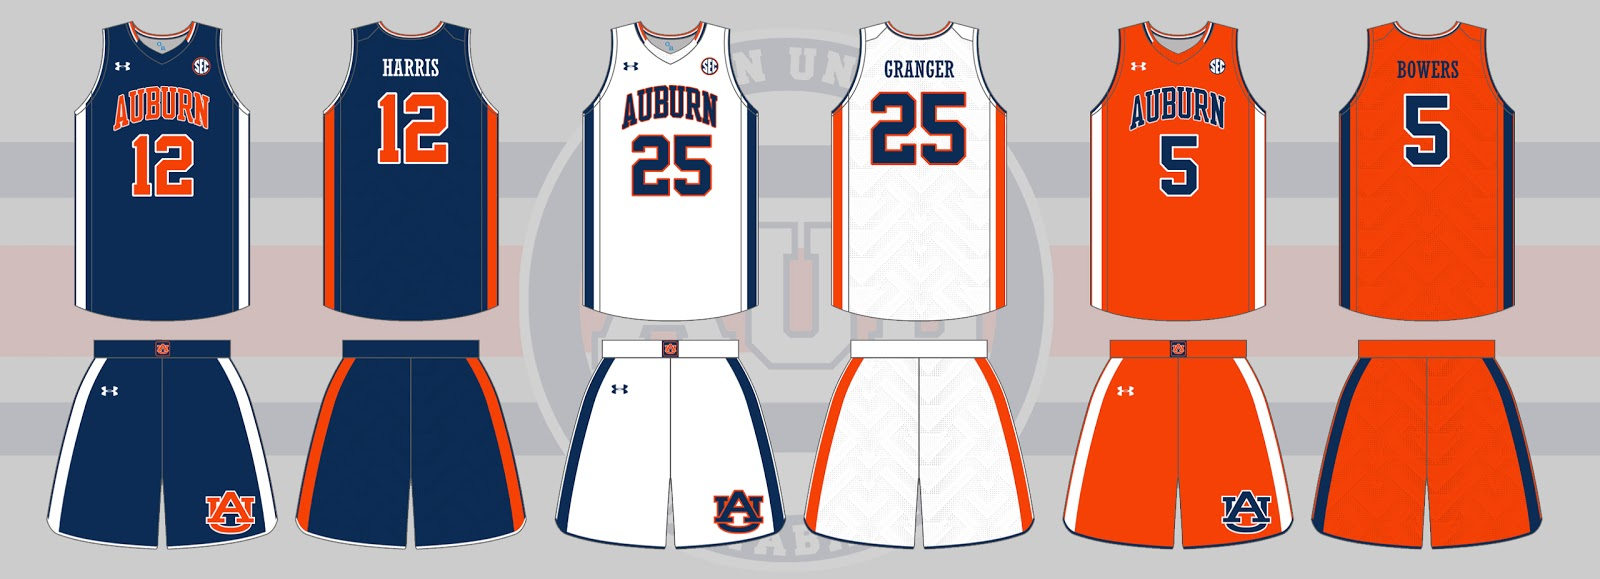 9a6abb98cba Replacing the previous alternate uniforms that only saw half a season